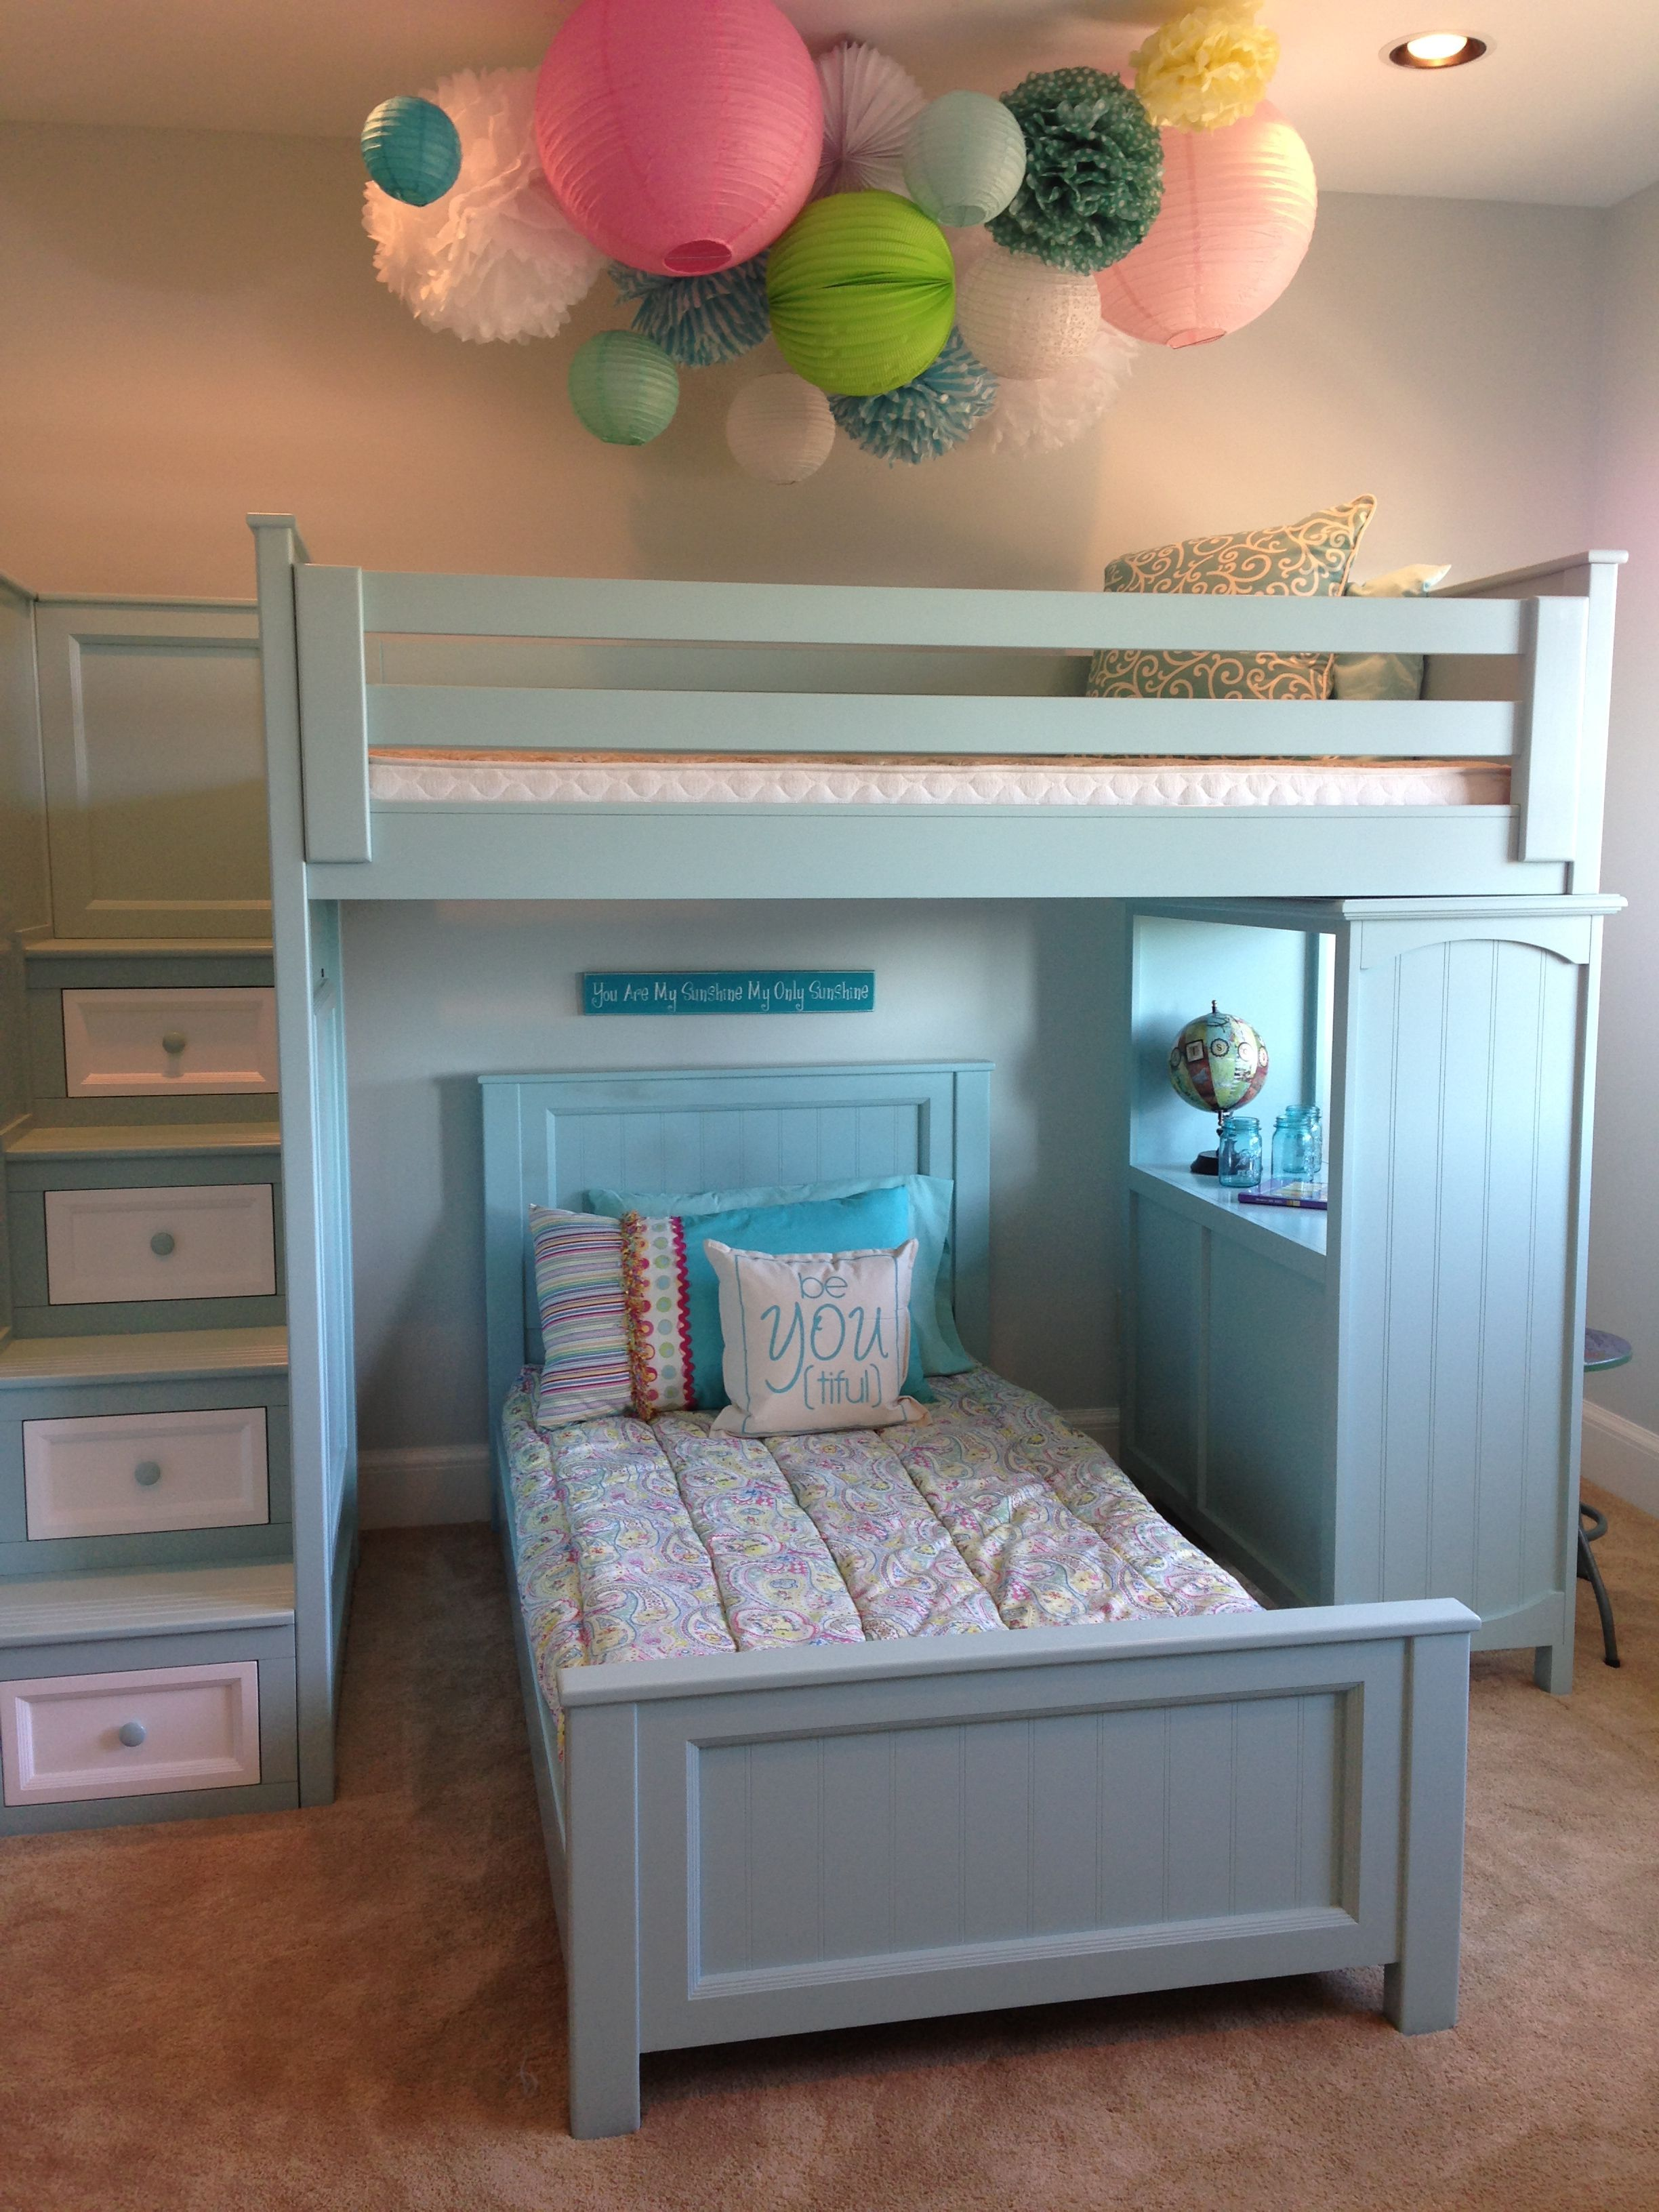 This Sydney Bunk Bed Would Be So Cute For A Girls Room